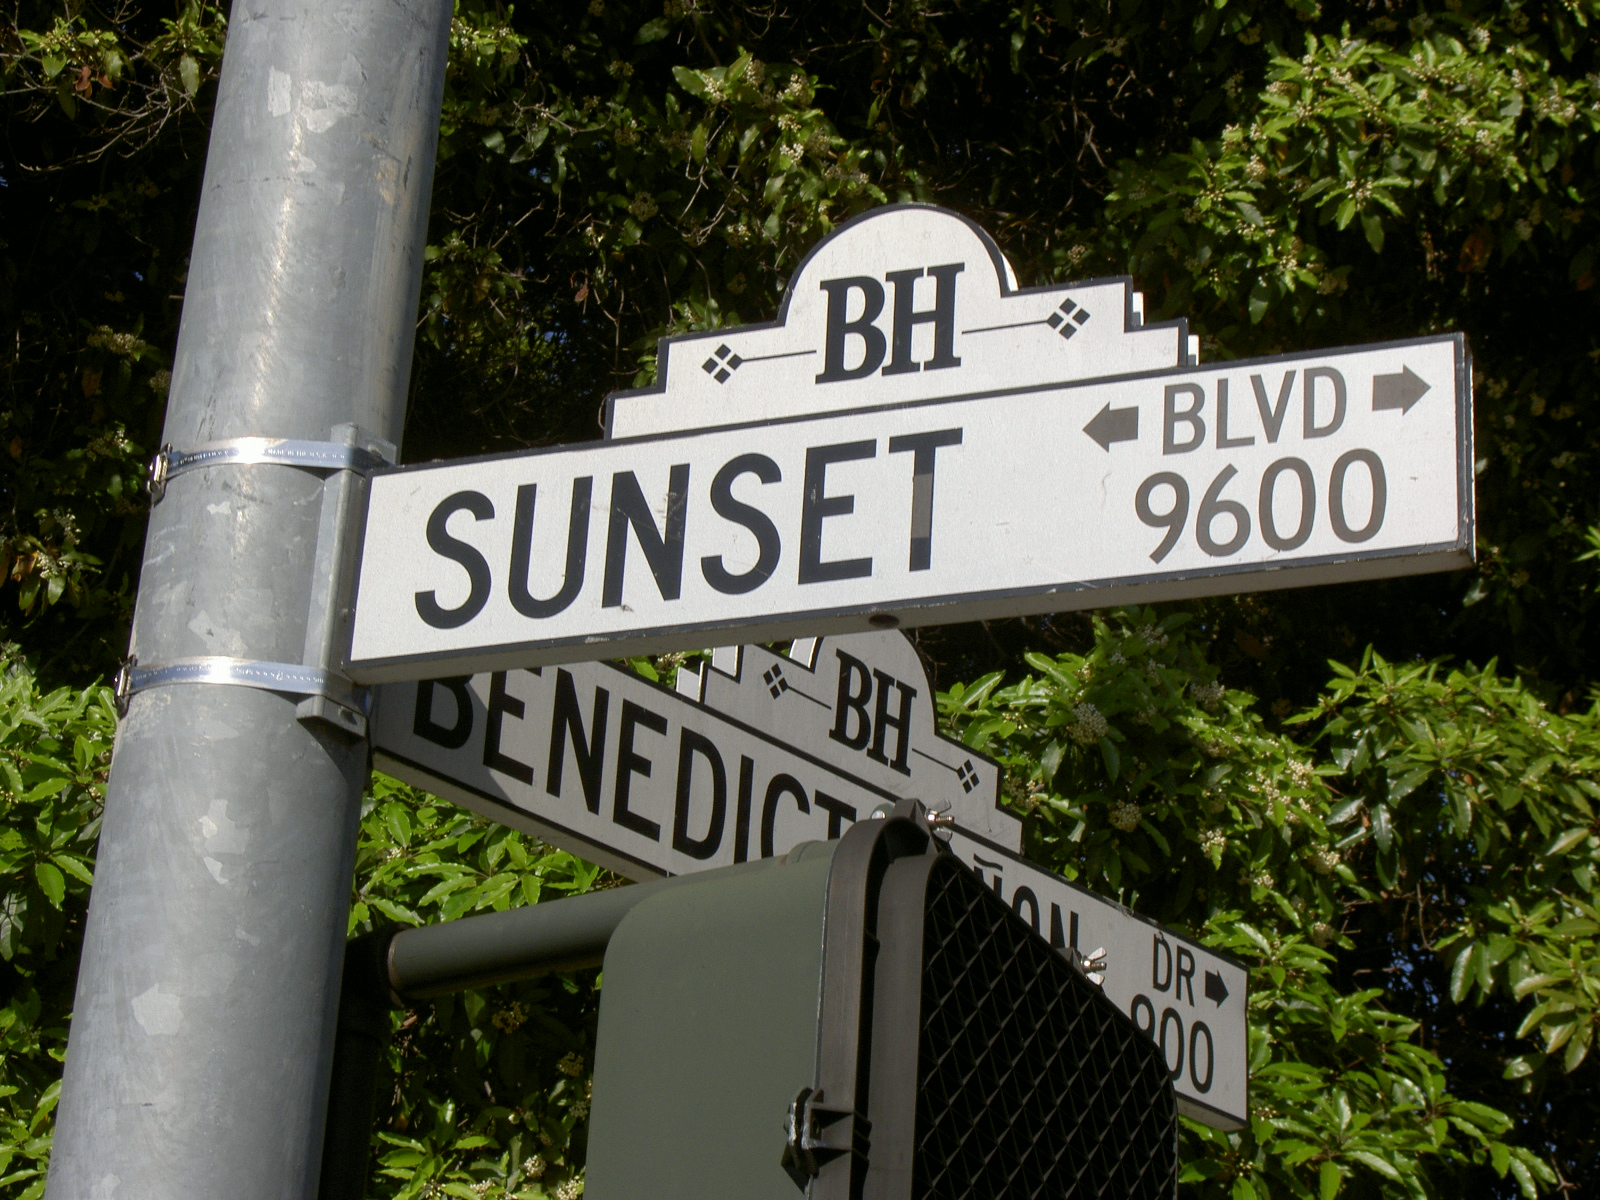 https://upload.wikimedia.org/wikipedia/commons/0/0f/Sunset_Blvd_sign.JPG